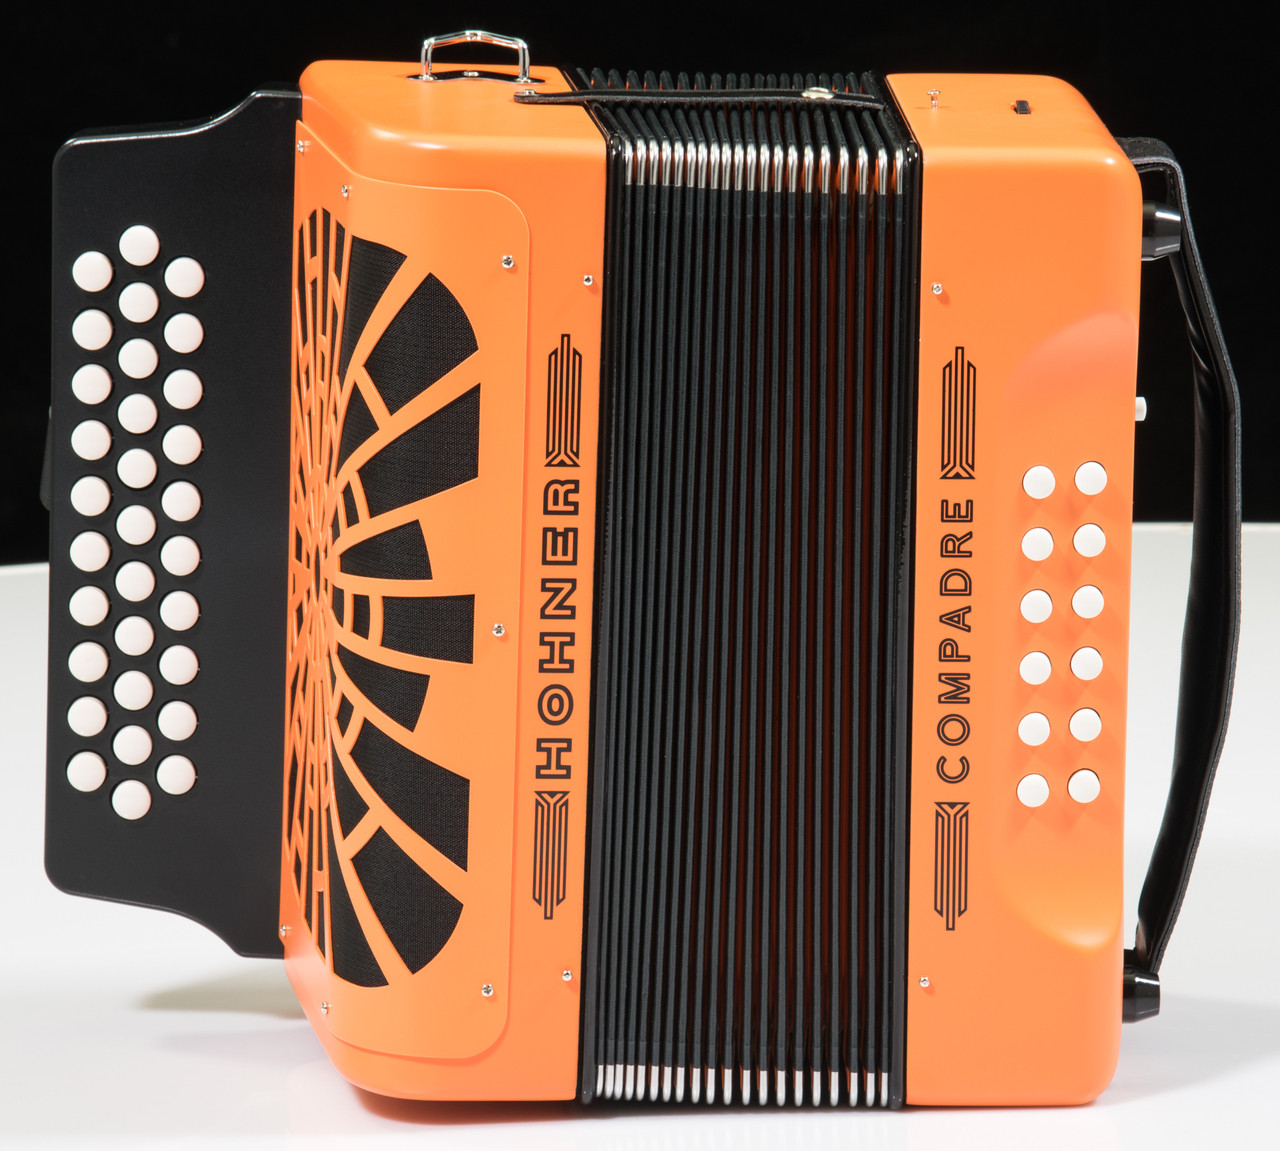 hohner compadre accordion w gig bag orange g c f. Black Bedroom Furniture Sets. Home Design Ideas